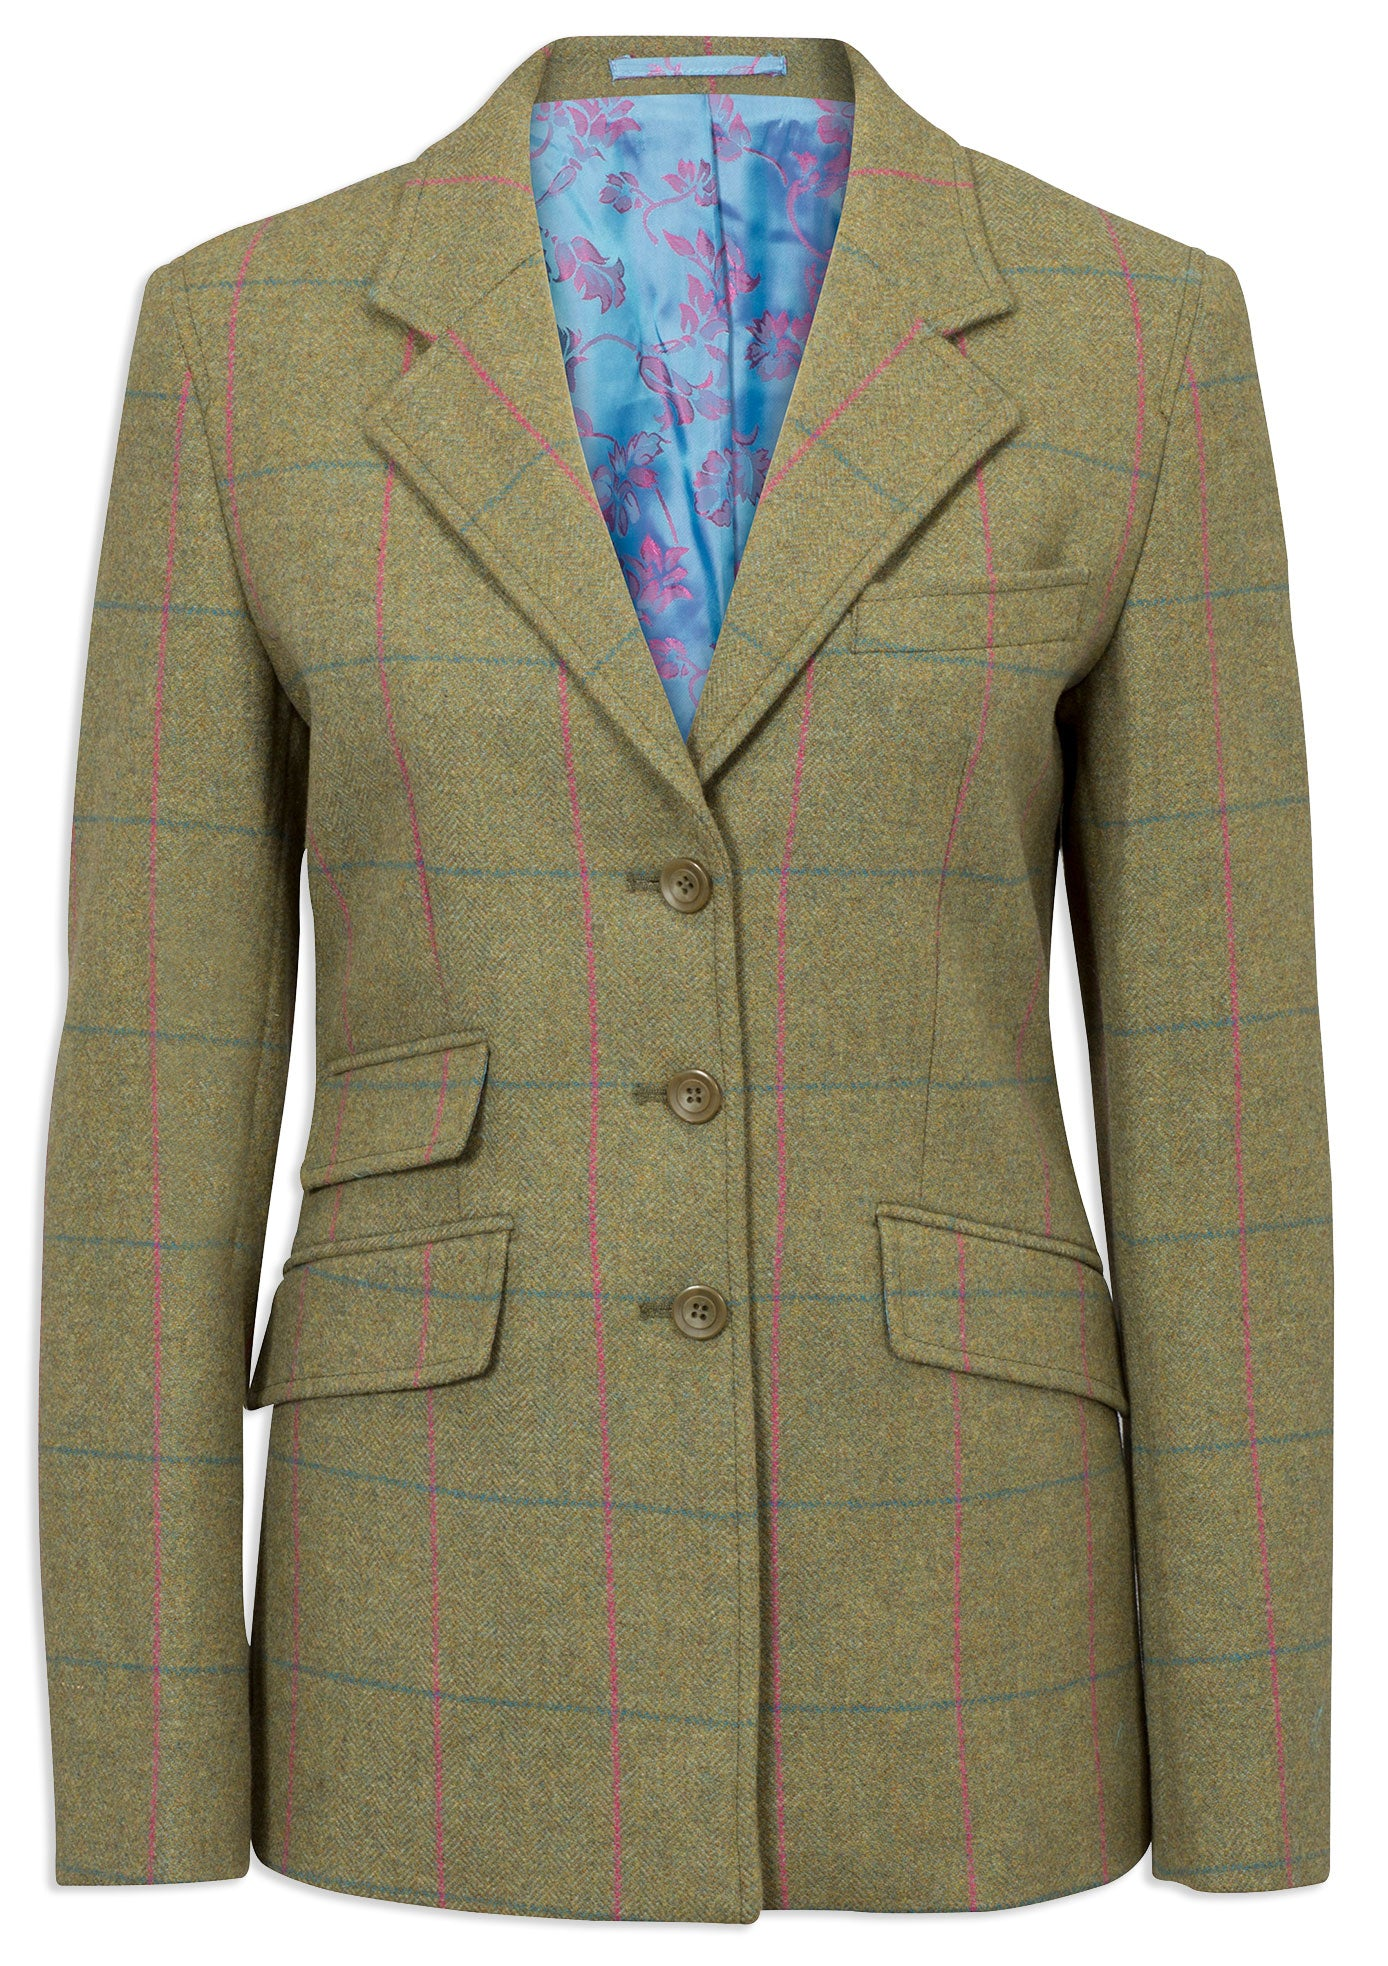 Alan Paine Combrook Tweed Blazer | Juniper